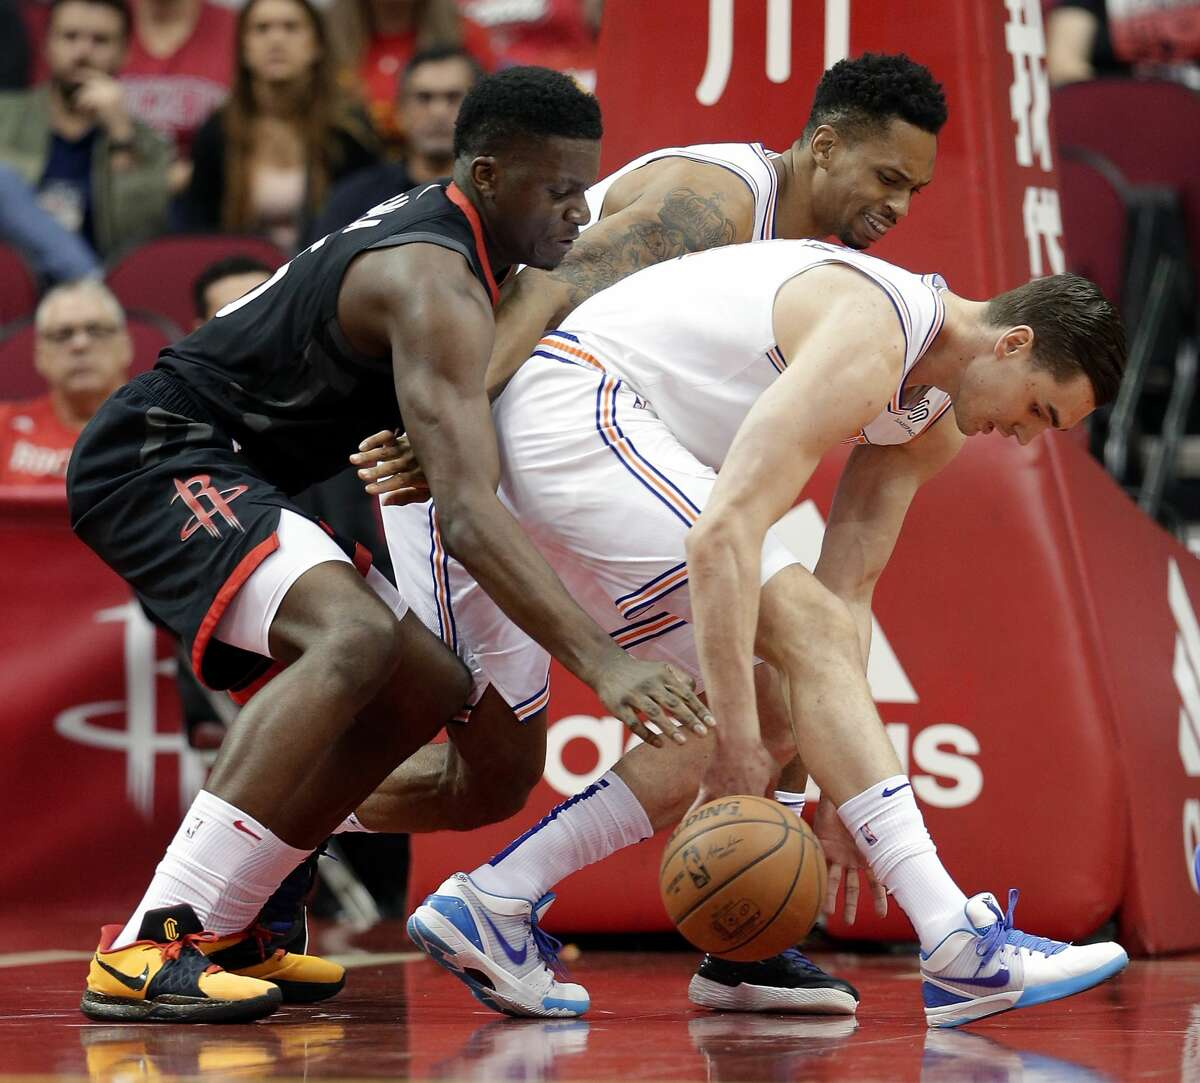 Houston Rockets center Clint Capela, left, reaches for the ball after knocking it away from New York Knicks forward Mario Hezonja, right, as forward Lance Thomas, back, watches during the first half of an NBA basketball game Friday, April 5, 2019, in Houston. (AP Photo/Michael Wyke)